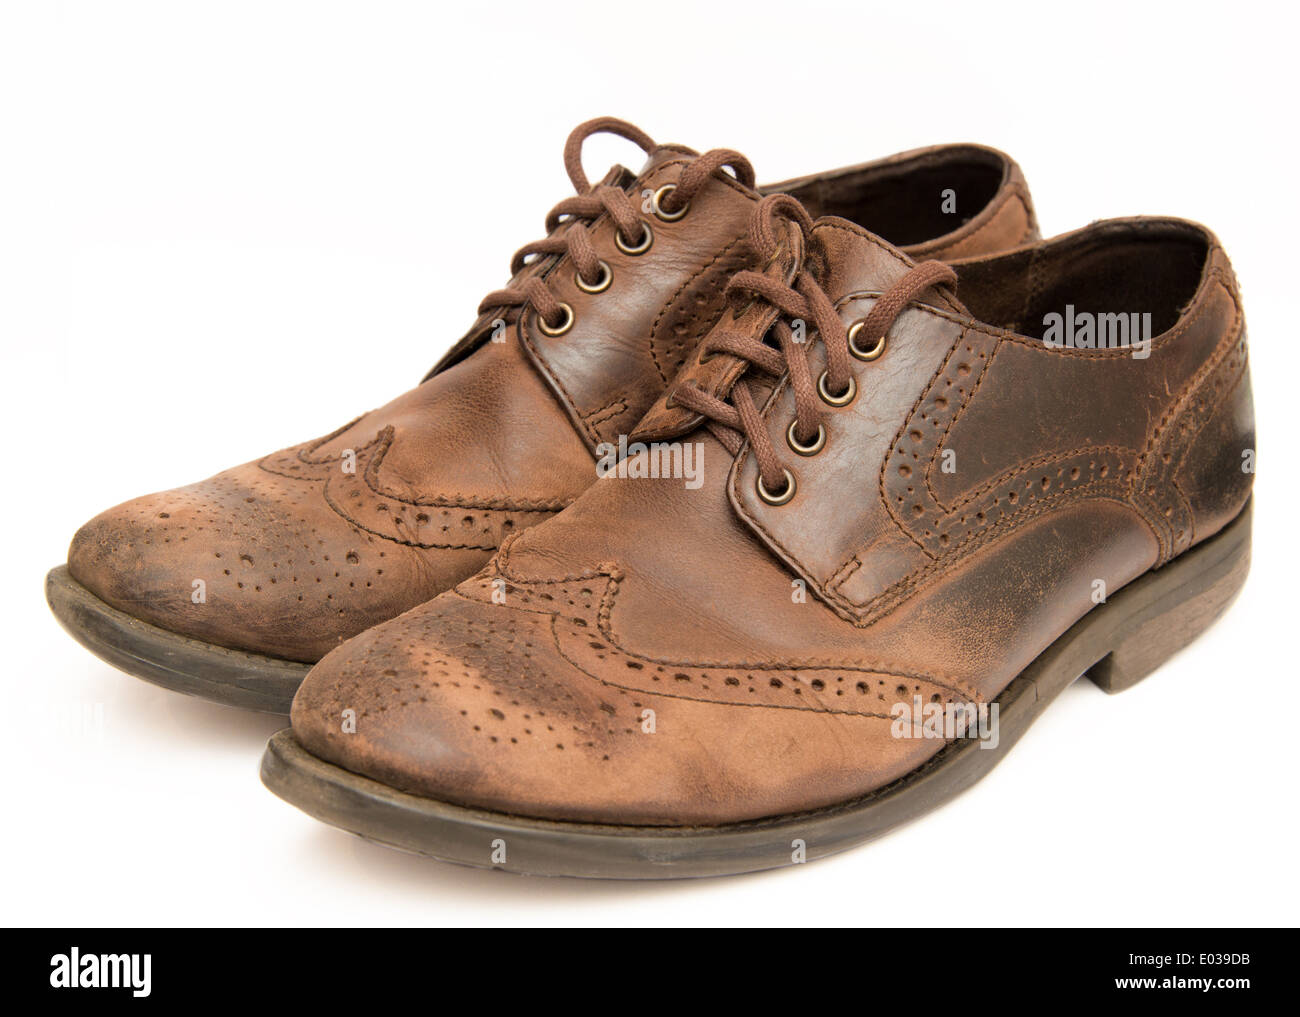 Old worn out brown shoes isolated on a white background - Stock Image